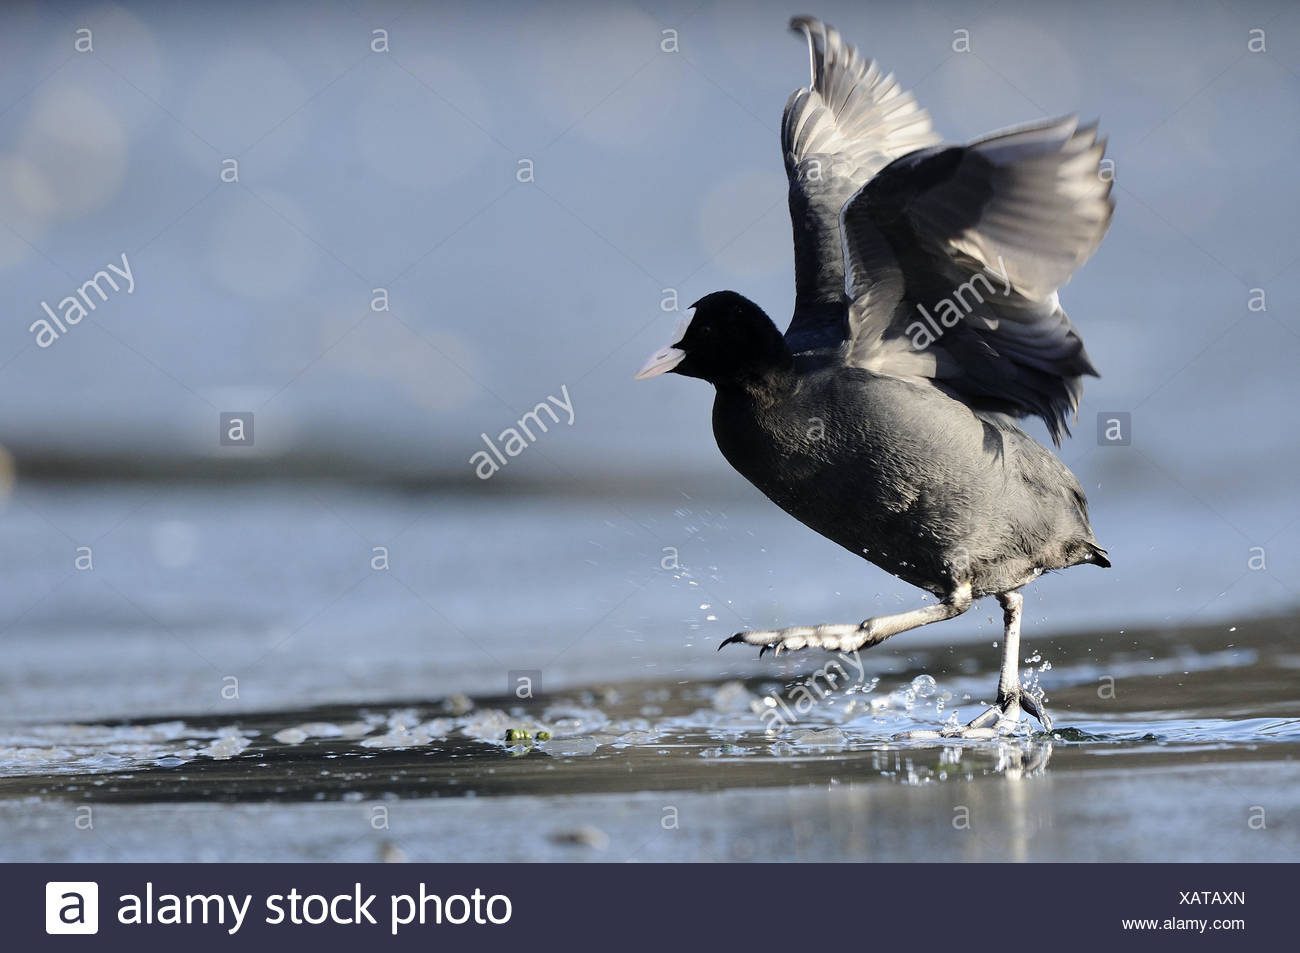 Coot, Fulica atra, water, shallowly, wade, side view, nature, animal, bird, wing, flapping of wings, plumage, legs, water drops, lake, pond, shore, movement, whole body, background, blur, - Stock Image